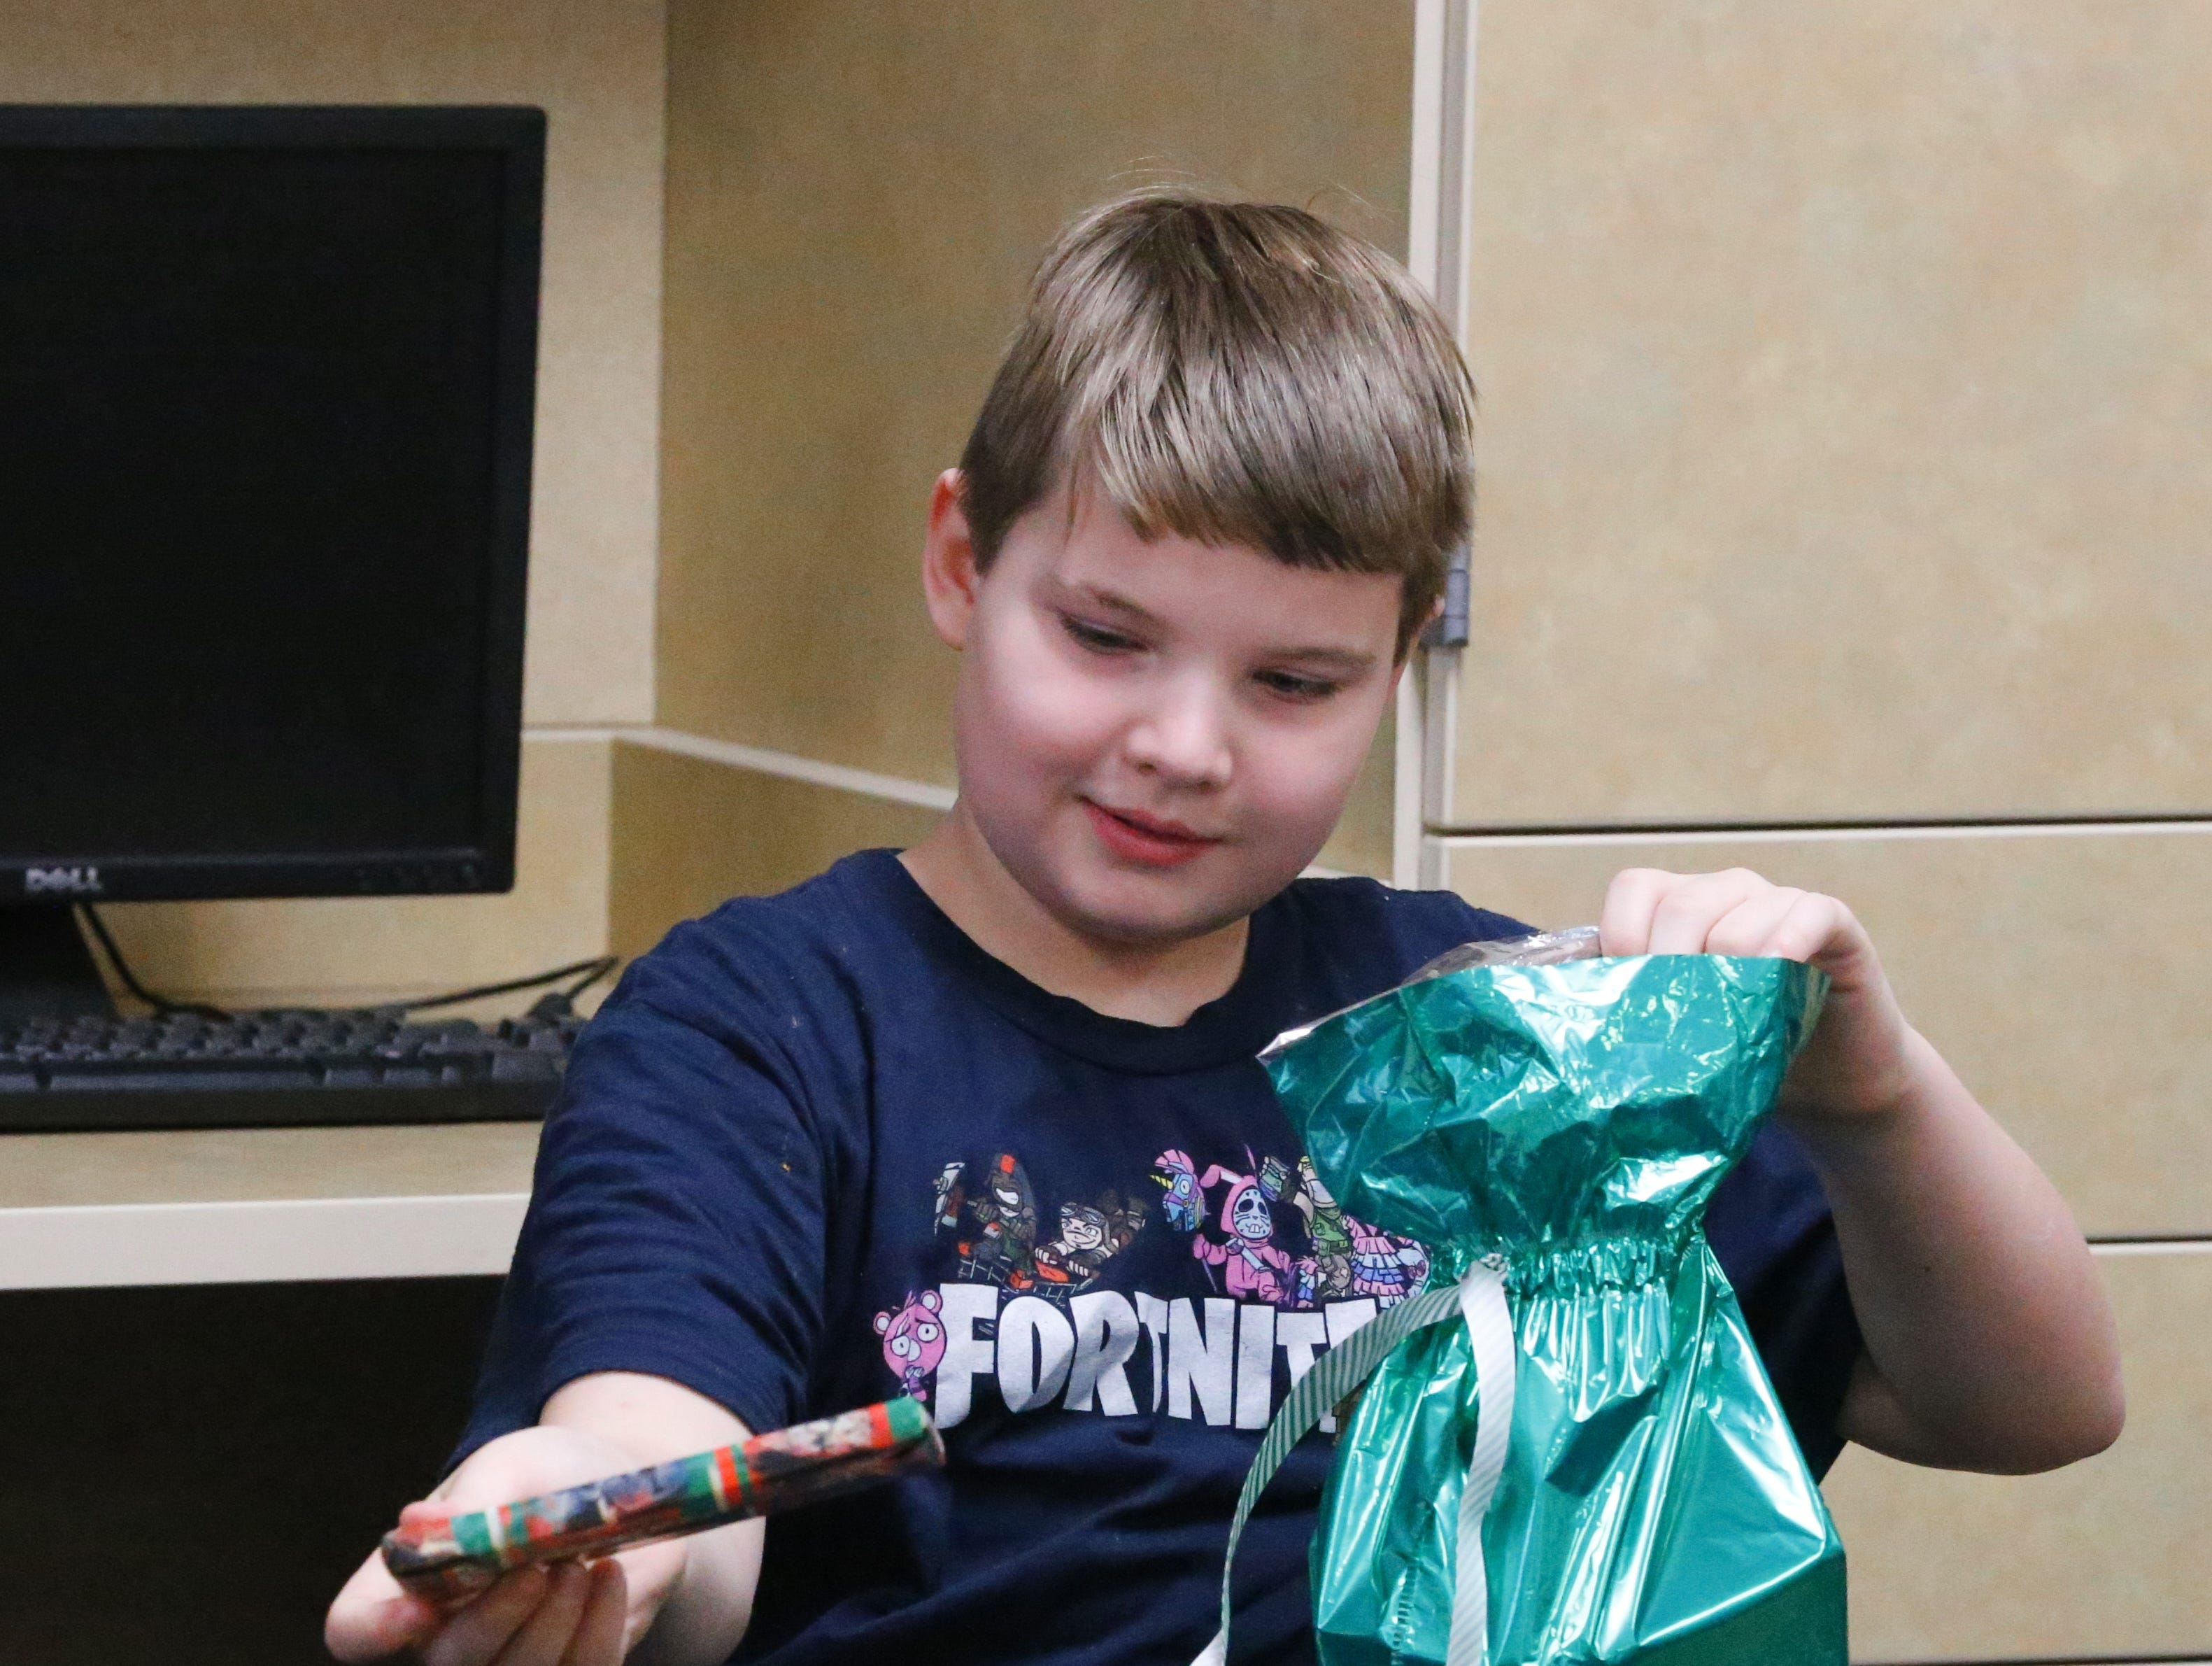 Joshua Idle, a fourth-grader at Fairview Elementary School in Richmond, opens a gift Jan. 7, 2019. Joshua and his younger brother, Ryan, were surprised with an Xbox One S purchased by Joshua's classmates with money raised from a store created by classmates Javeonte Johnson and D. J. Allen, who sold pictures to raise money for Idle. Idle was involved in an accident and lost his mom in Dec. 2018.